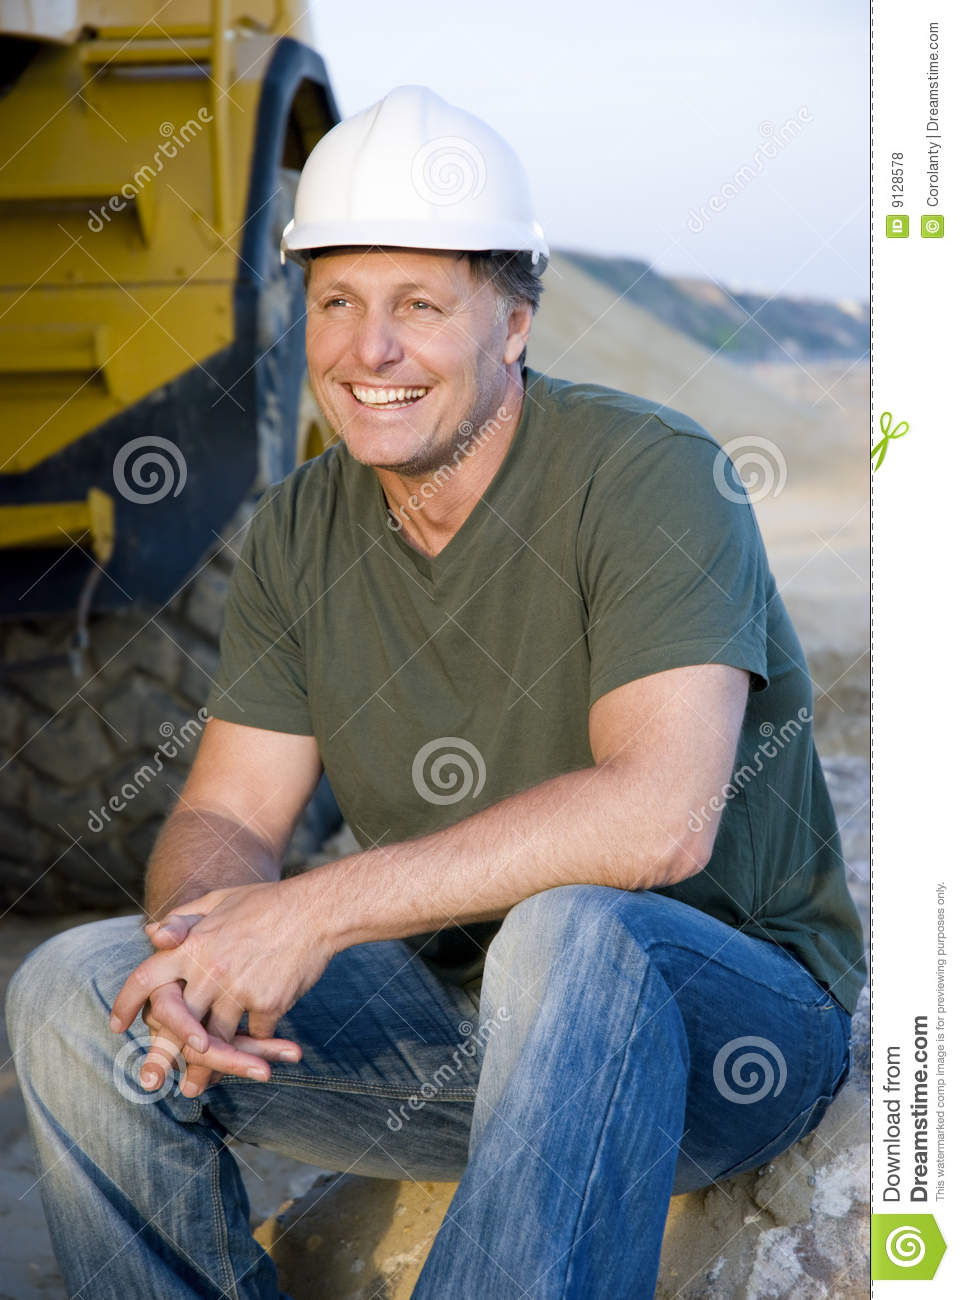 Handsome construction workers take a break